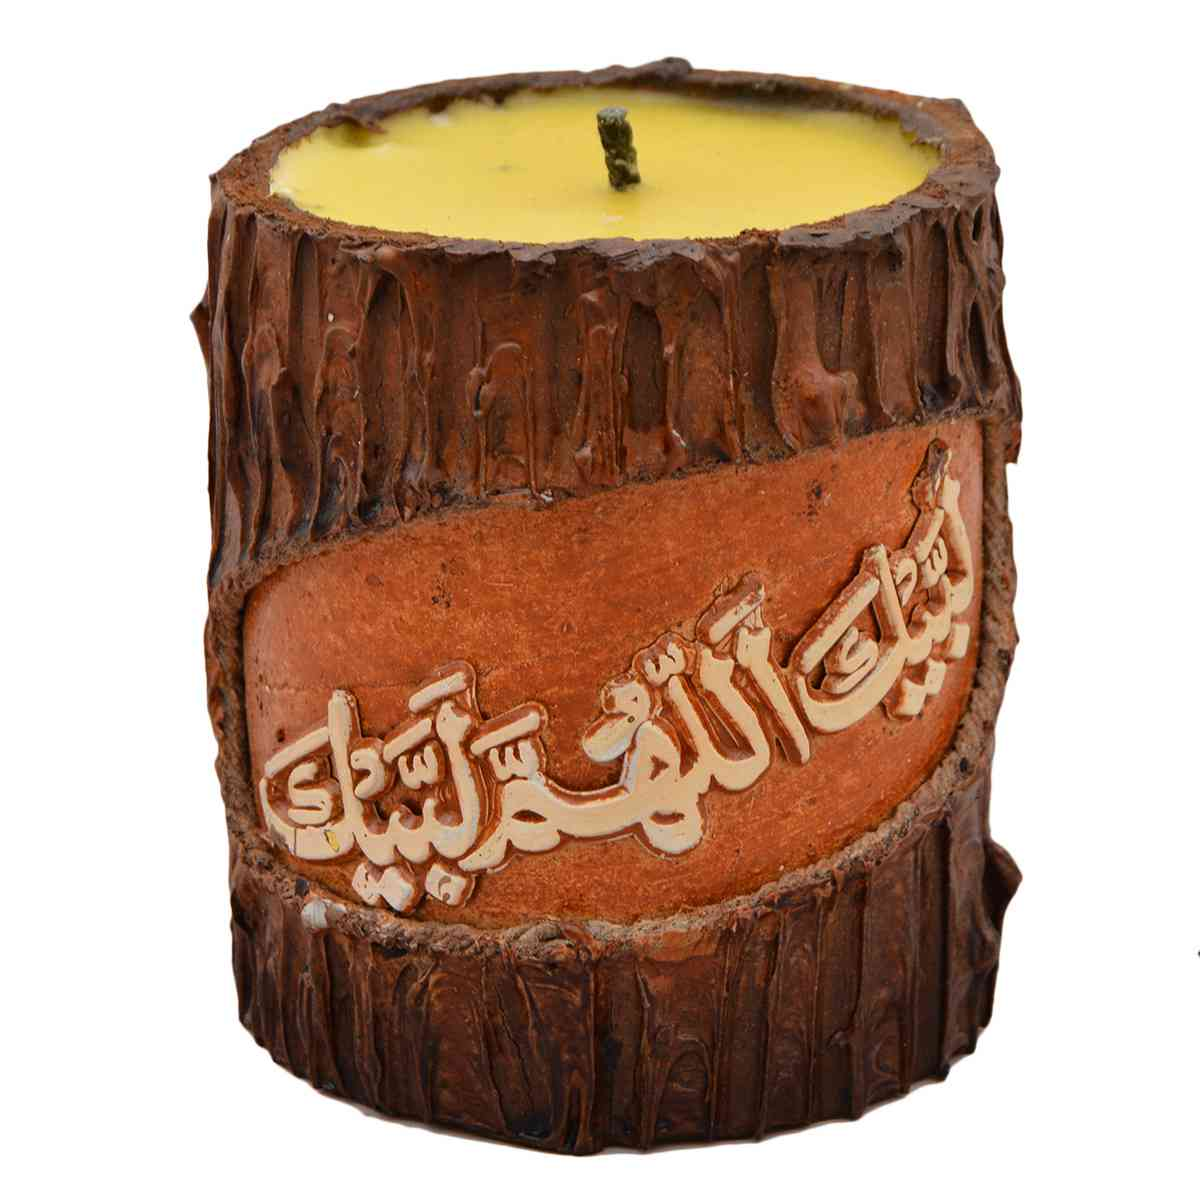 Original Wooden Calligraphic Candle for Room Decoration (Width 3 Inch x Height 4 Inch x Depth 4 Inch)